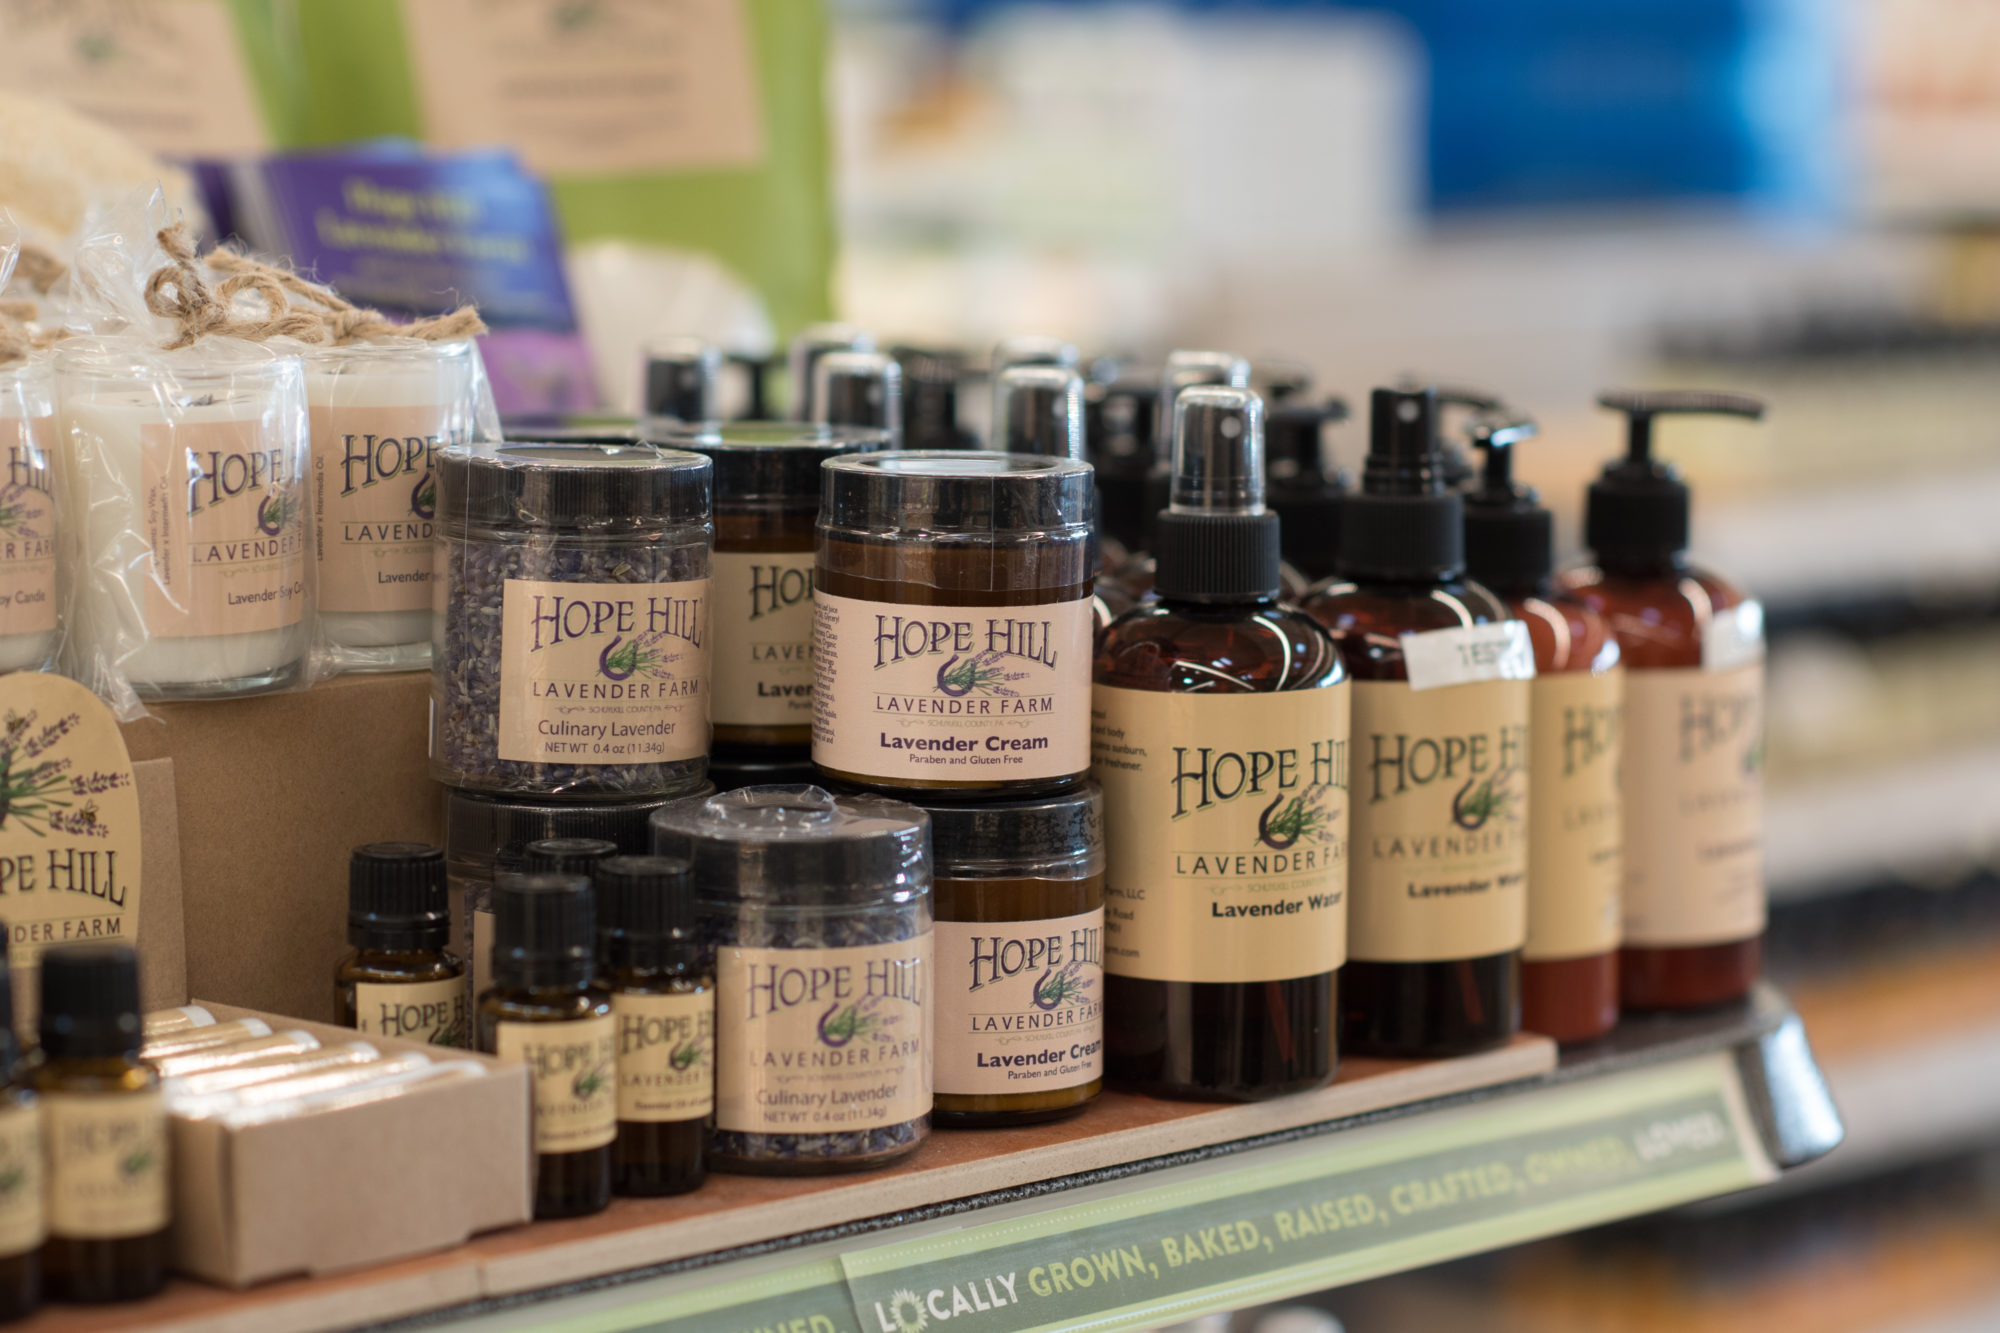 Hope Hill Kimberton Whole Foods Apothecary